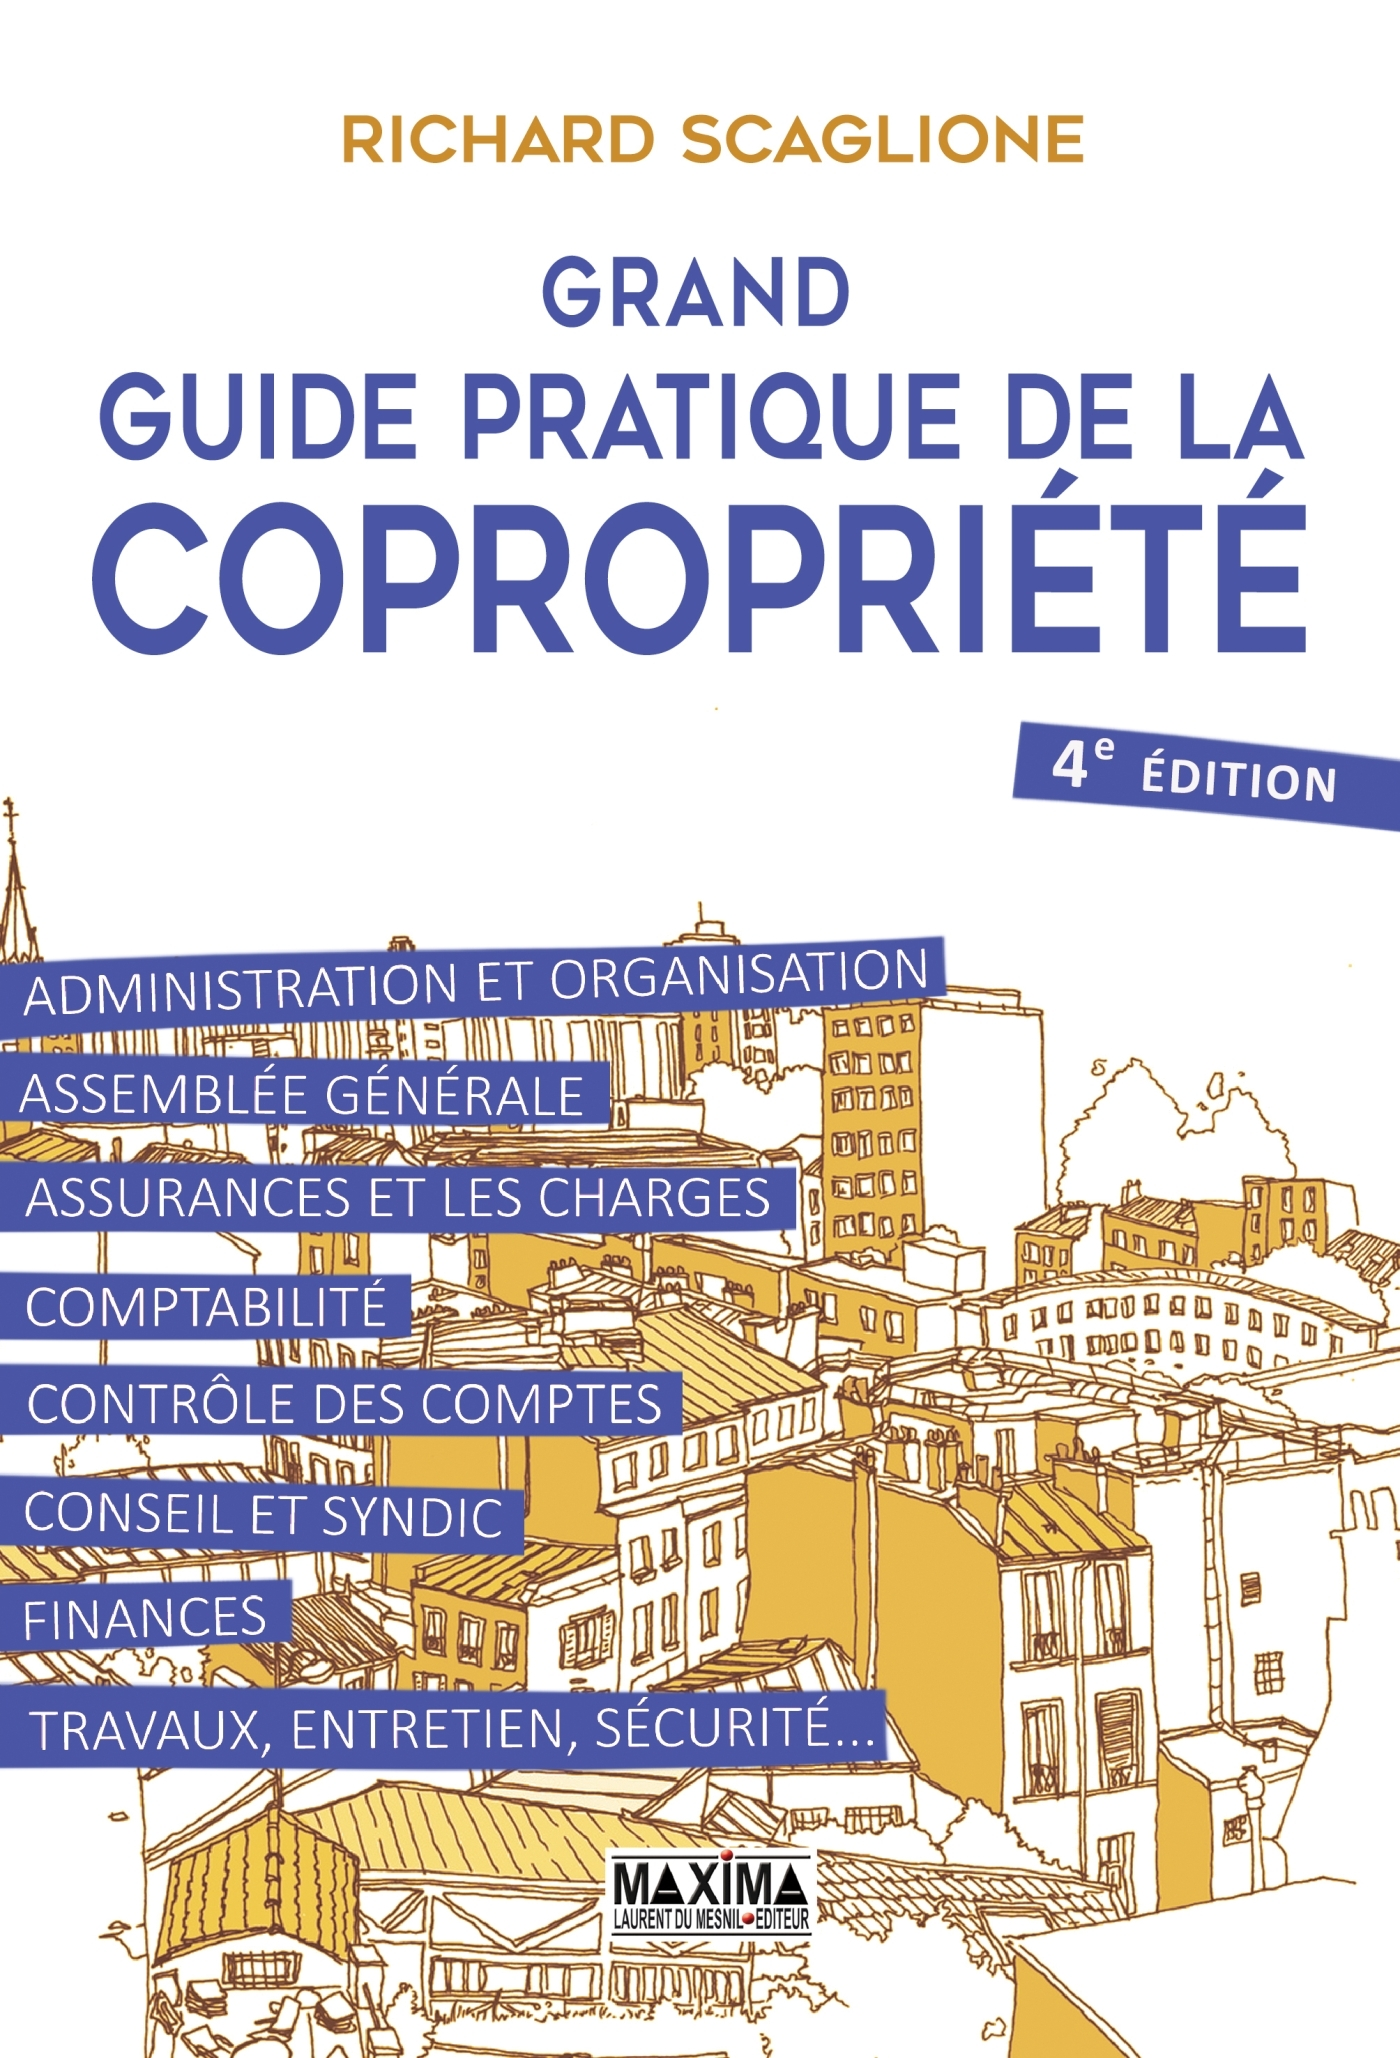 GRAND GUIDE PRATIQUE DE LA COPROPRIETE 4E EDITION